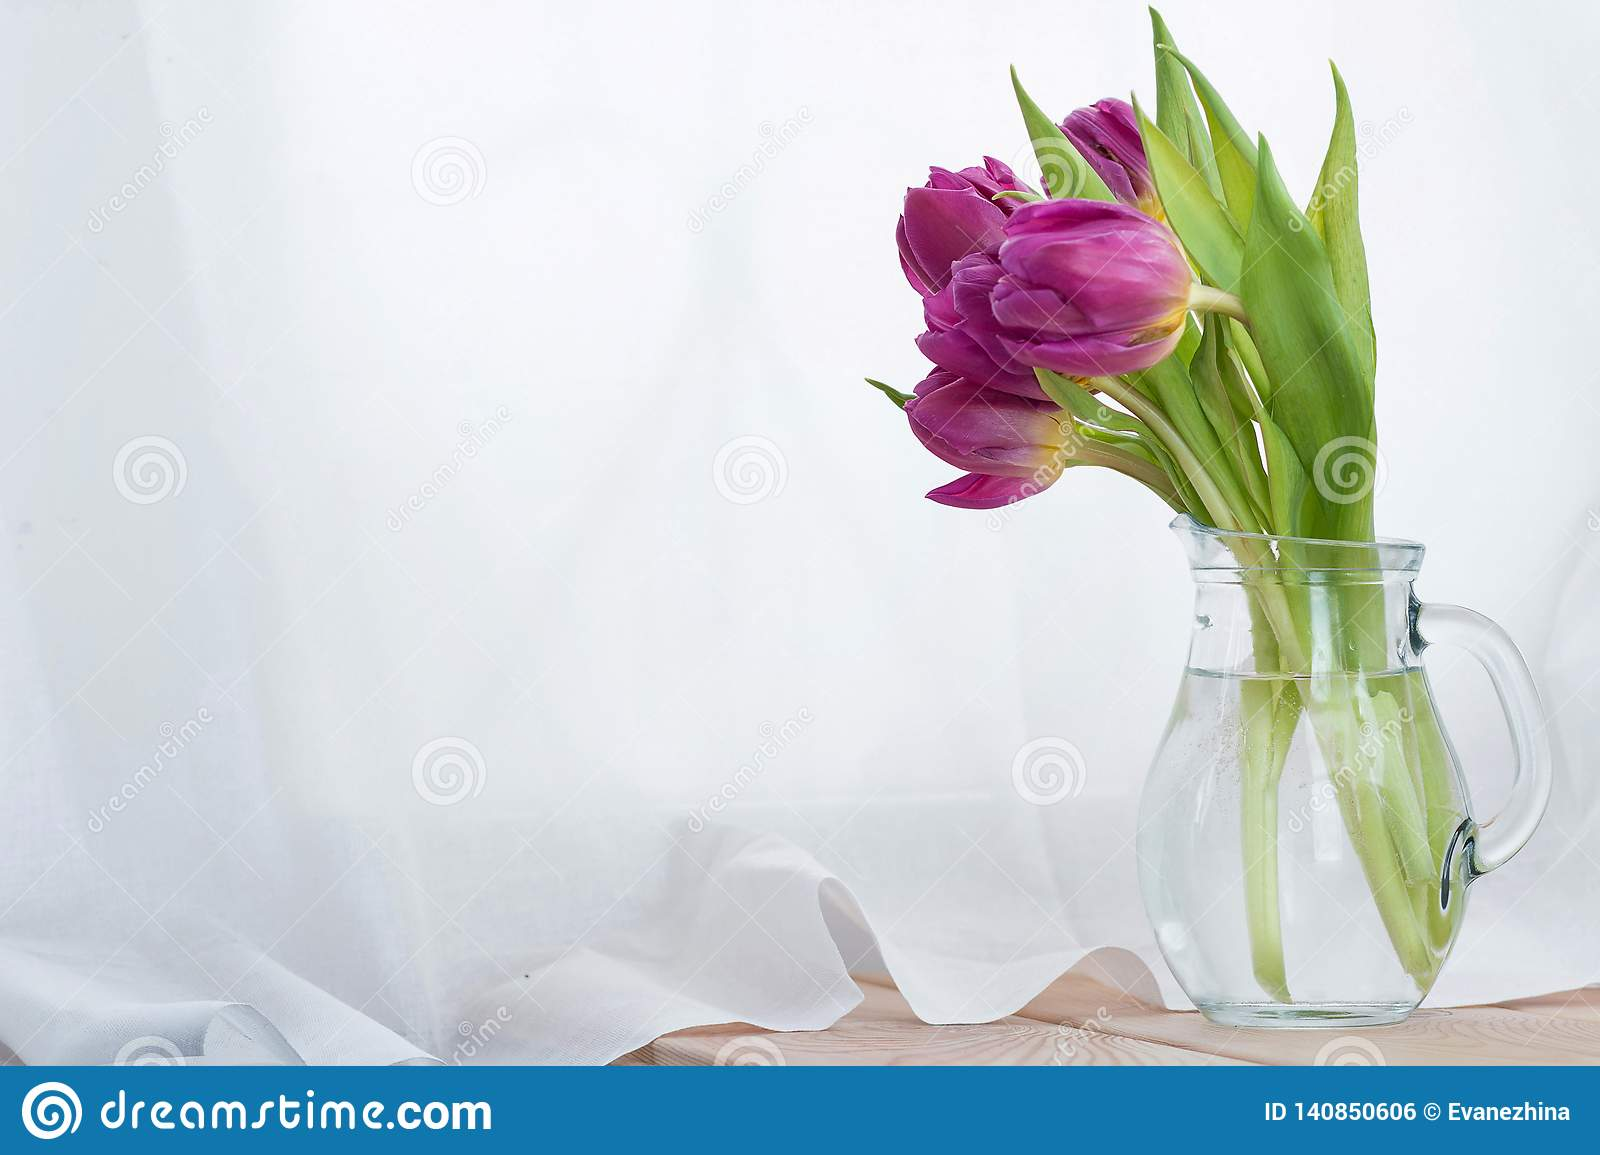 The bouquet of pink tulips in a glass decanter on a wooden table